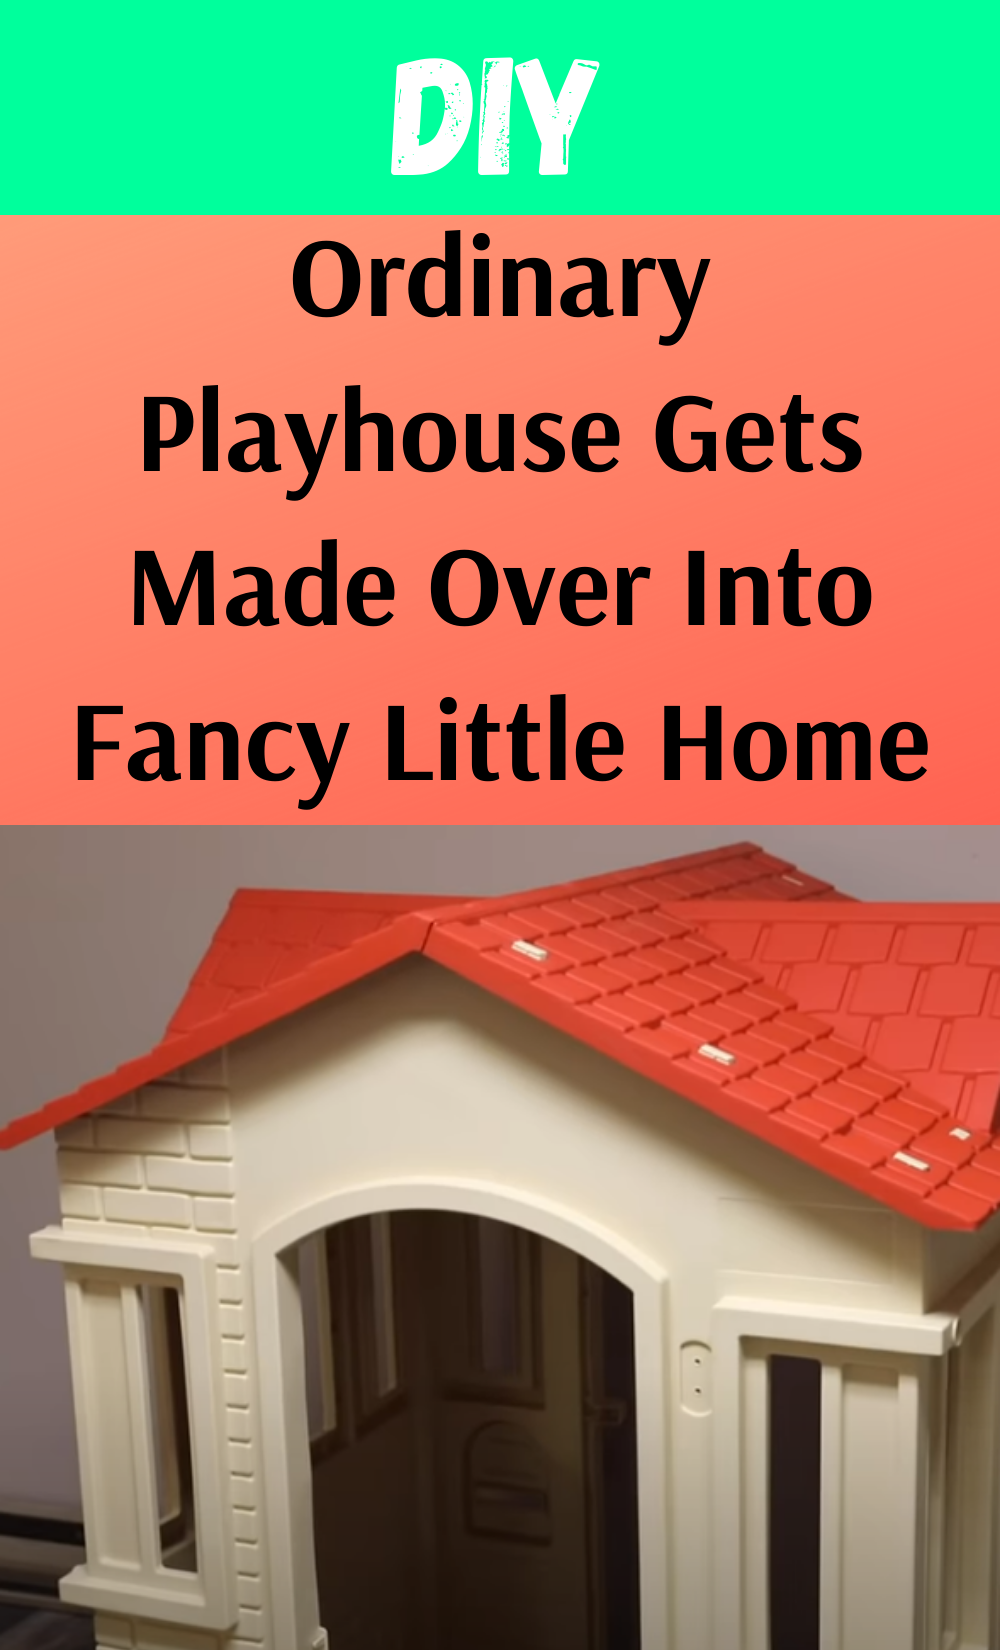 Ordinary Playhouse Gets Made Over Into Fancy Littl